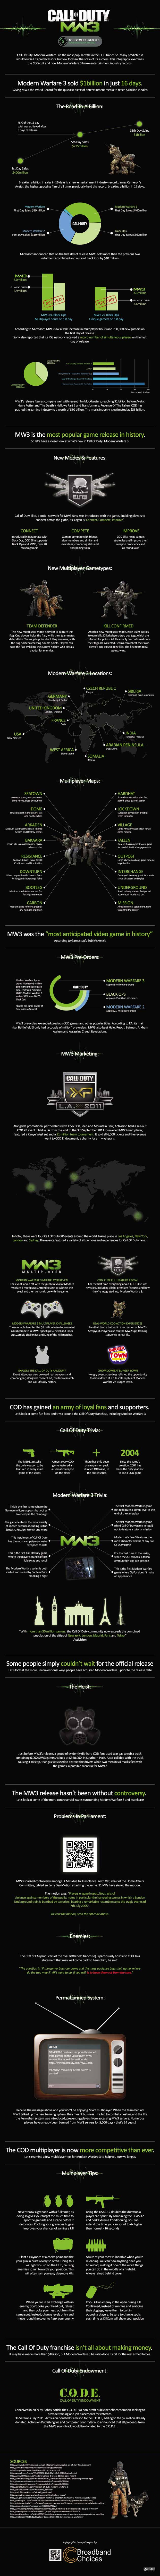 Call of Duty: Modern Warfare 3 Infographic